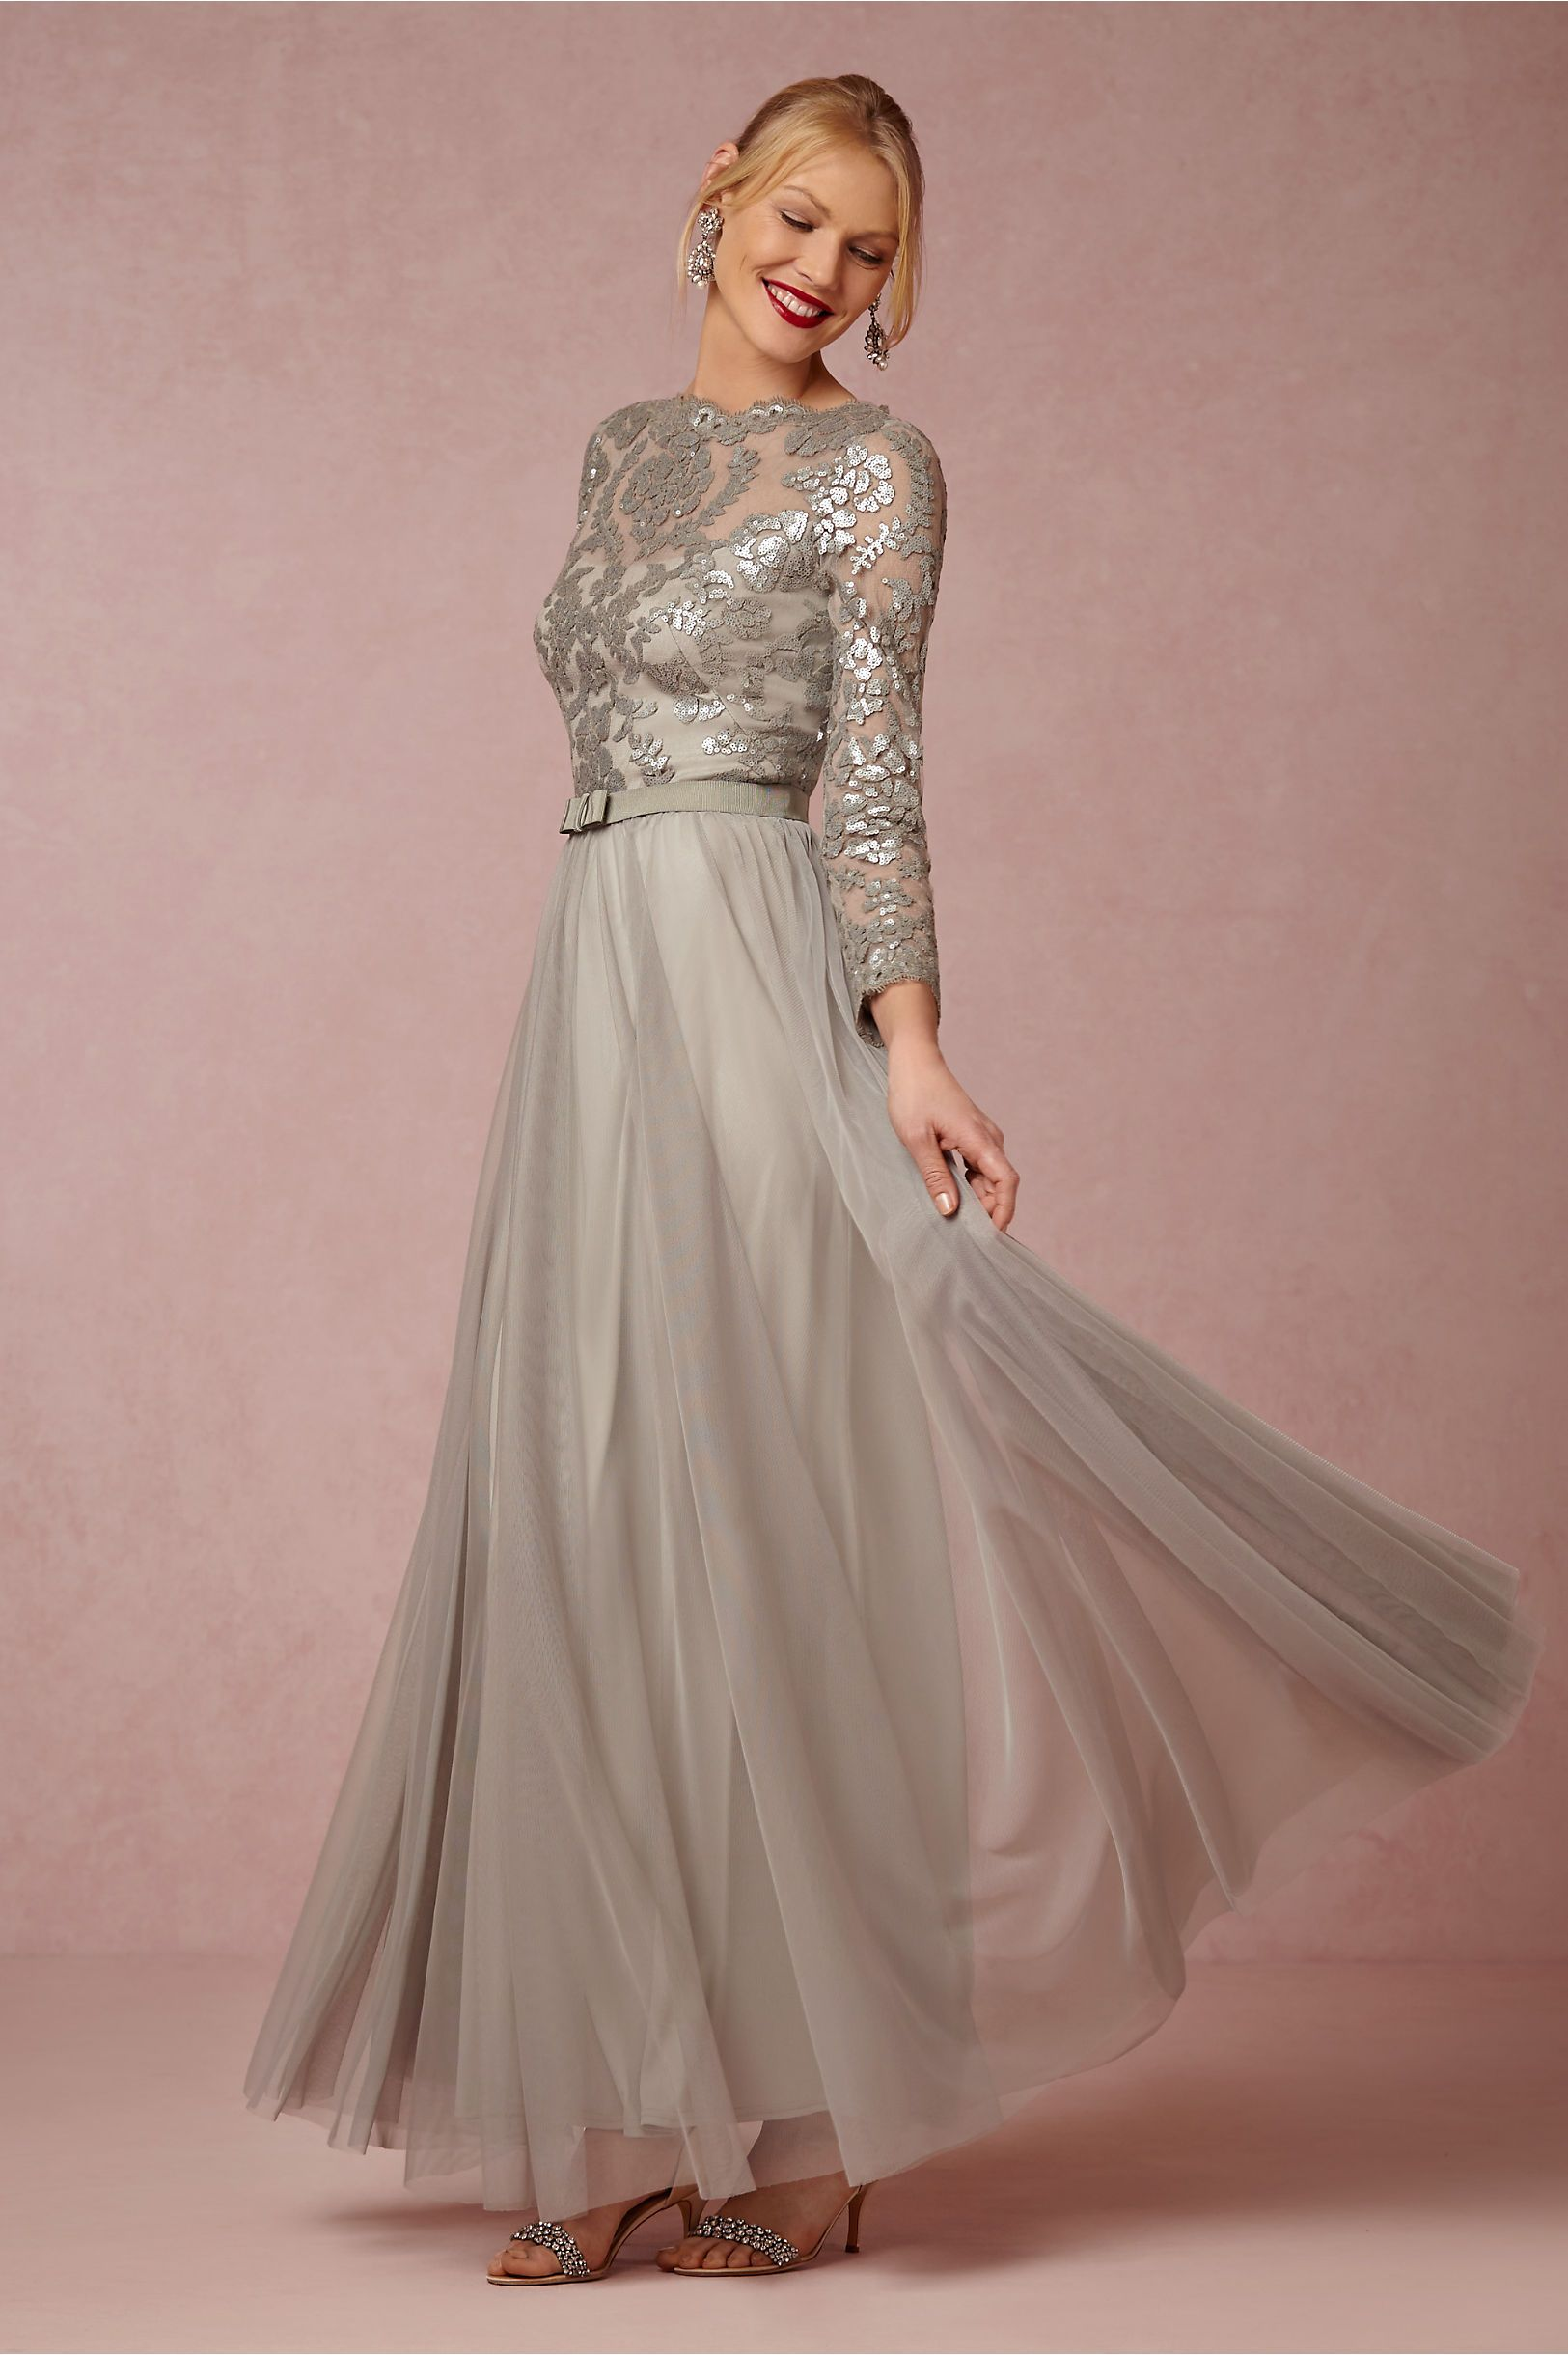 Lucille Dress in Bridal Party & Guests Mothers Dresses at BHLDN $440 ...